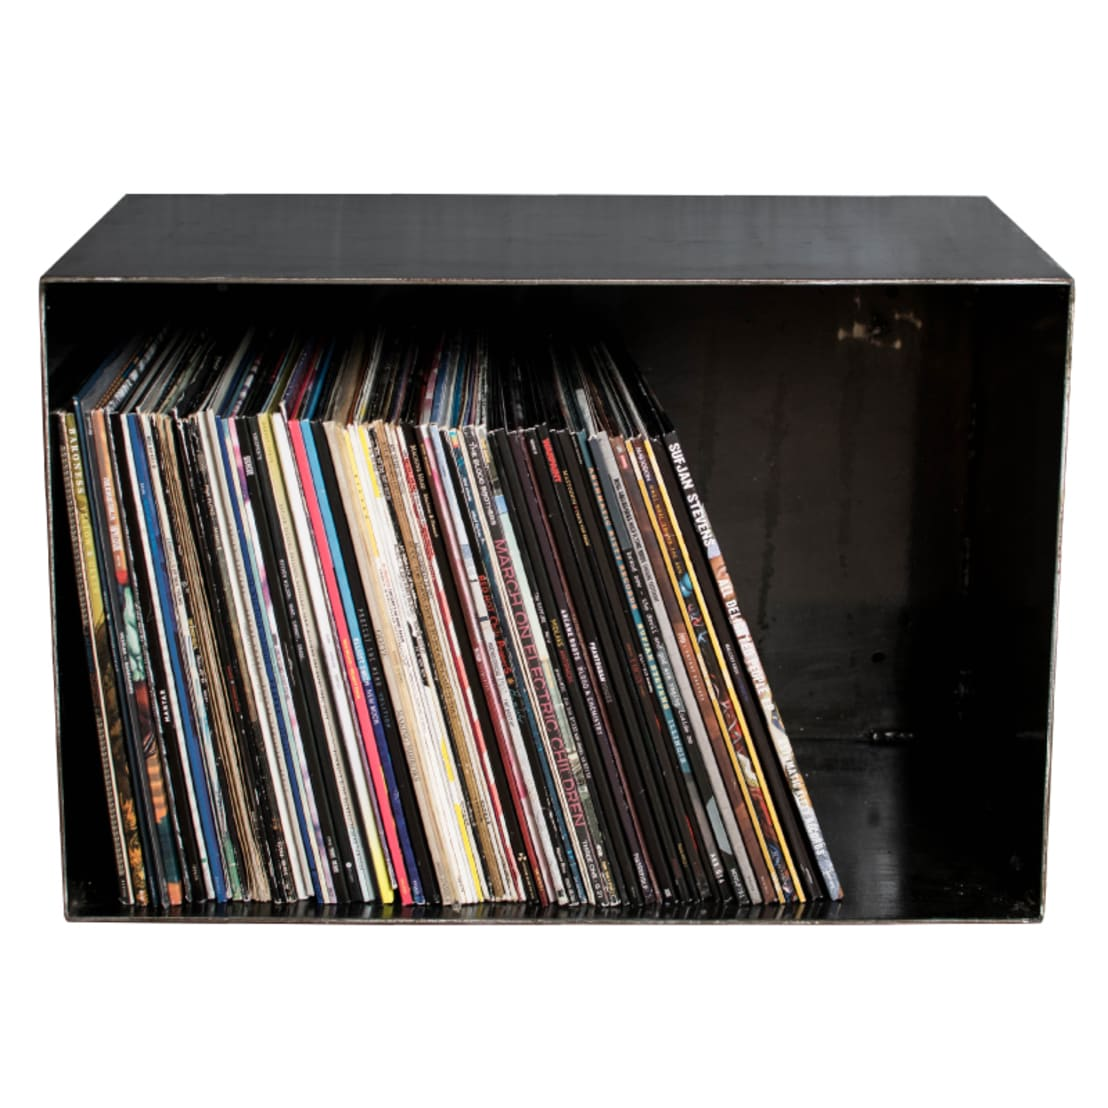 vinyl schallplatten regal lp rack f r 100 lps 4mm. Black Bedroom Furniture Sets. Home Design Ideas